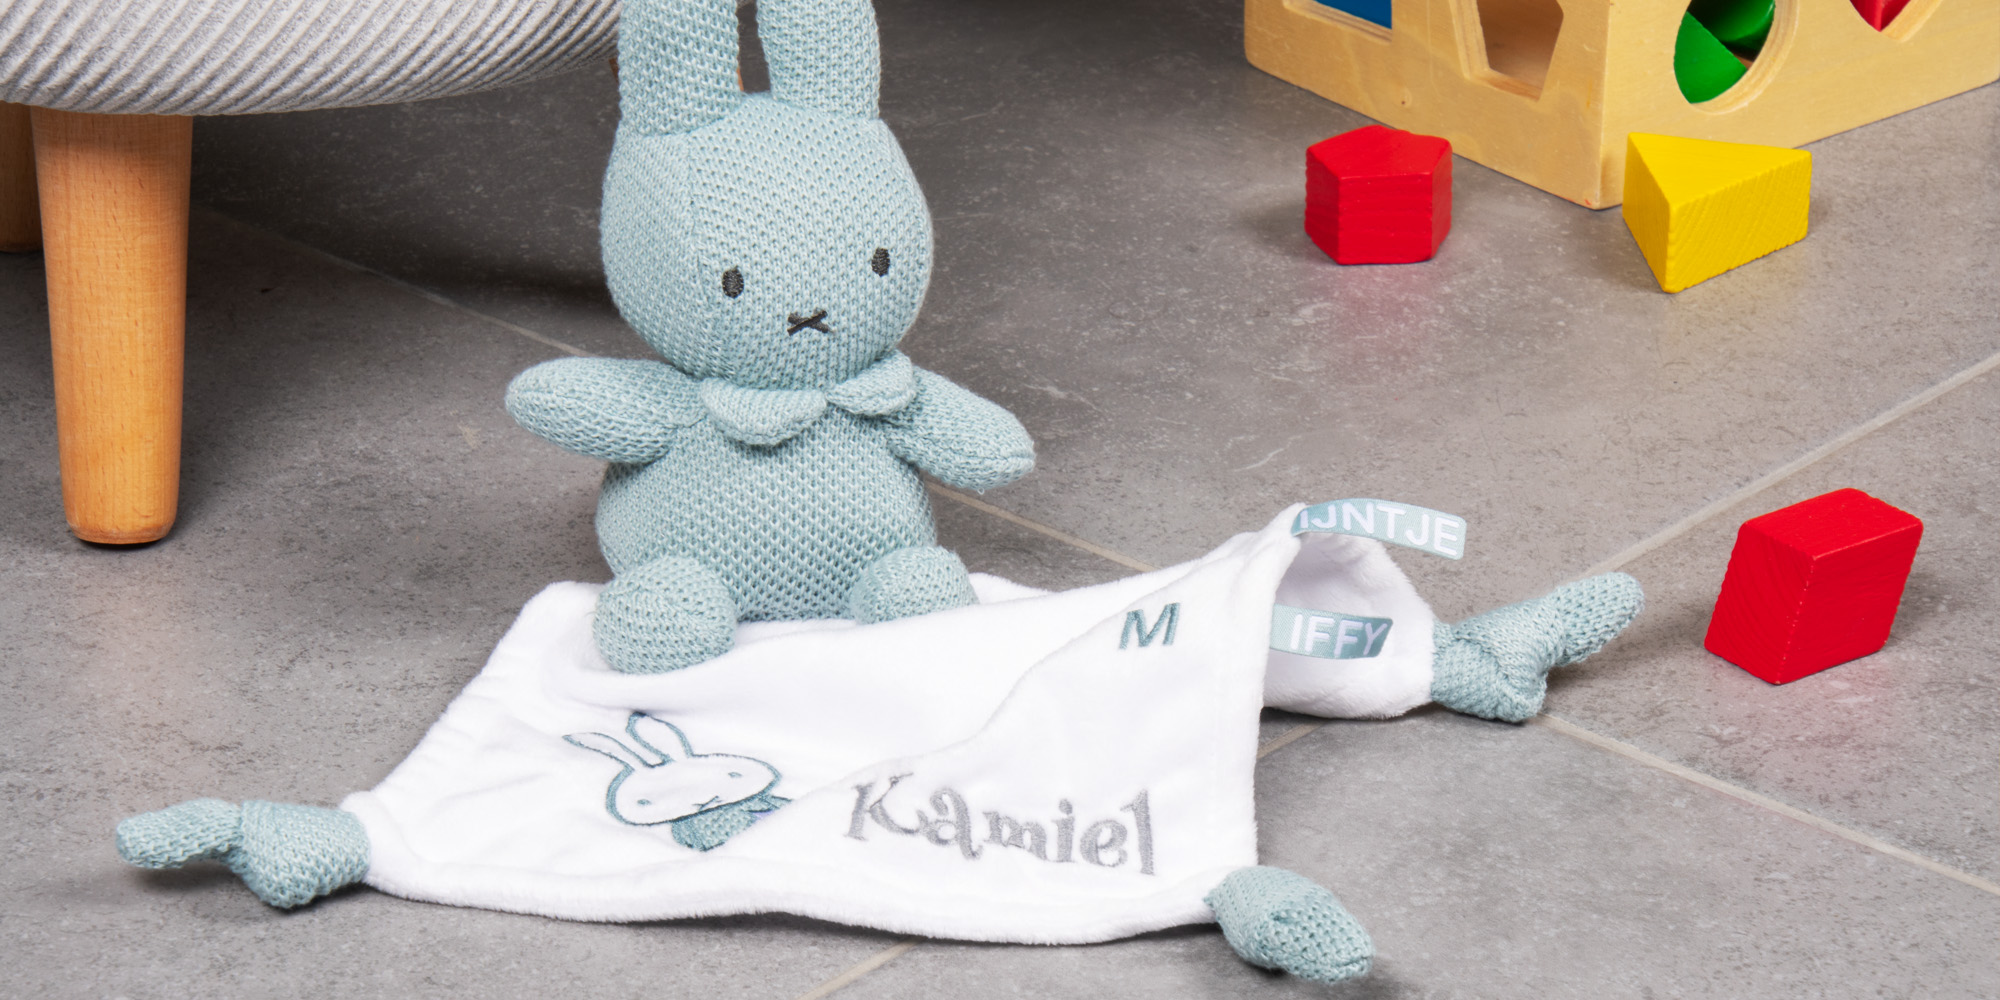 Embroidered Miffy toy